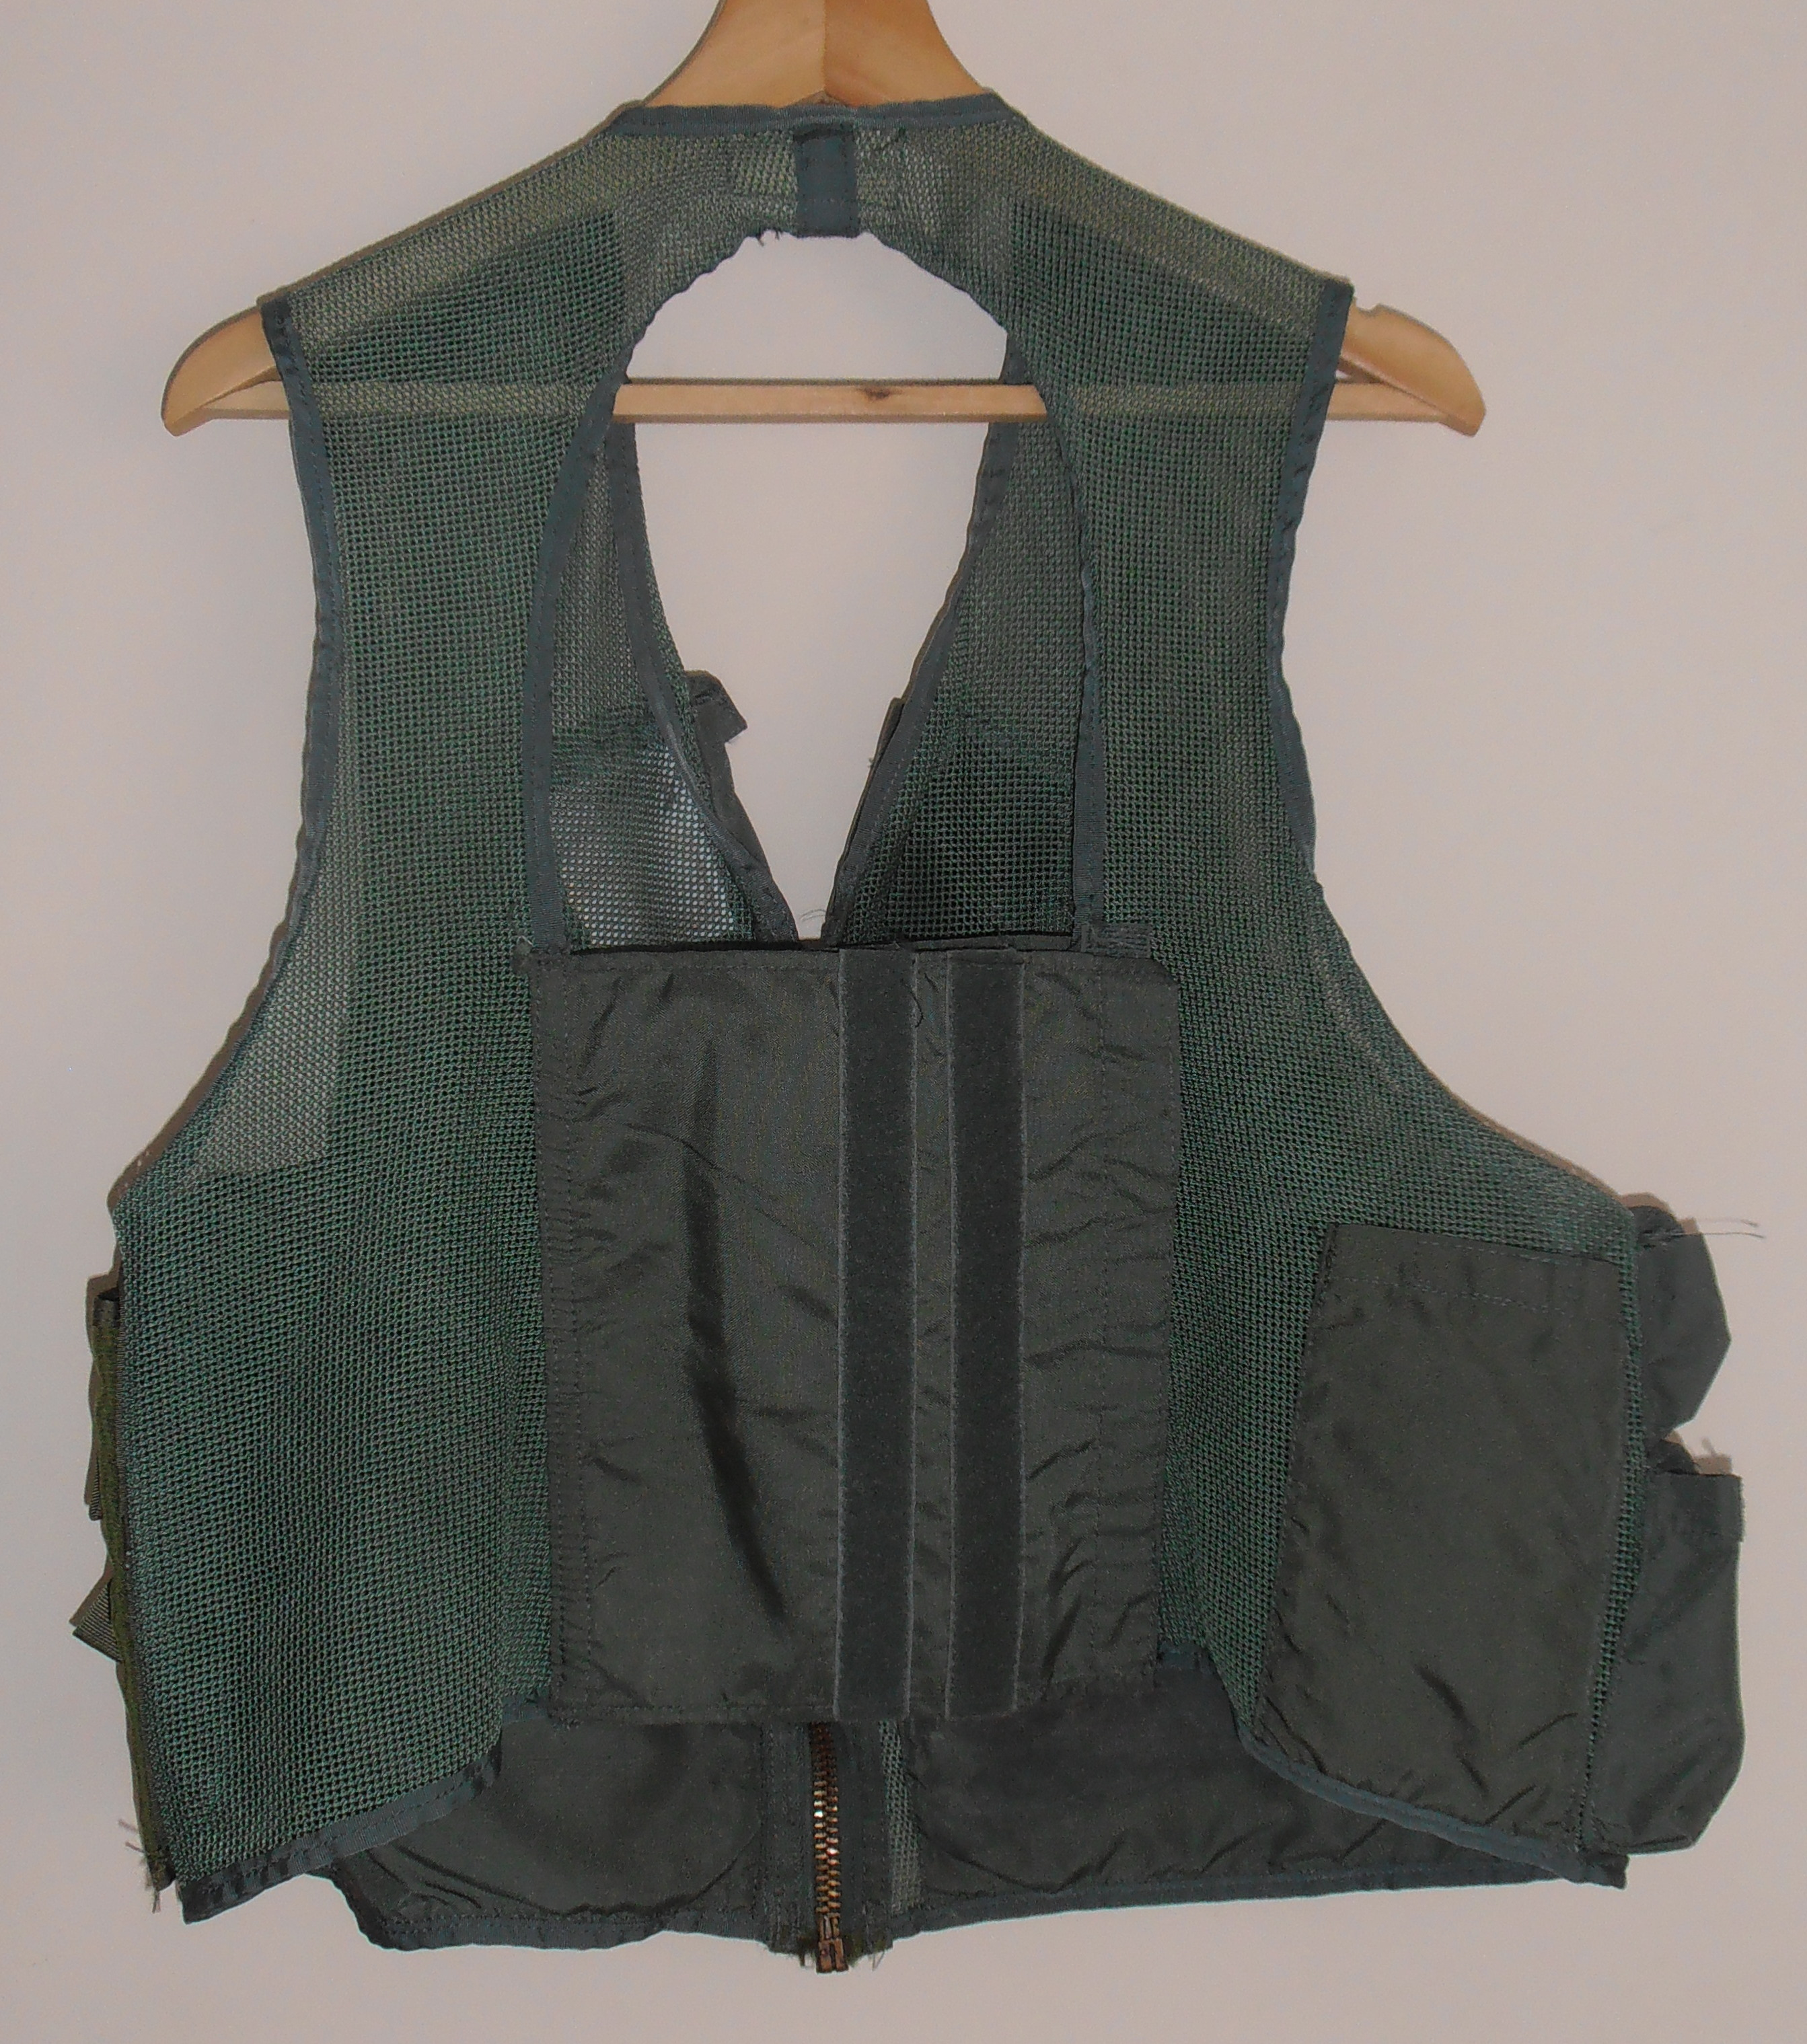 become army helicopter pilot with Us Air Force Surivial Vest Size Large Dated 1976 on Fort Carson Female Soldier Advances To Army Ranger Training likewise Riptide in addition Bell Ah 1z Viper Cockpit additionally What Is A Twin Tail together with Ip man meets dempsey t shirts 235149293579863493.